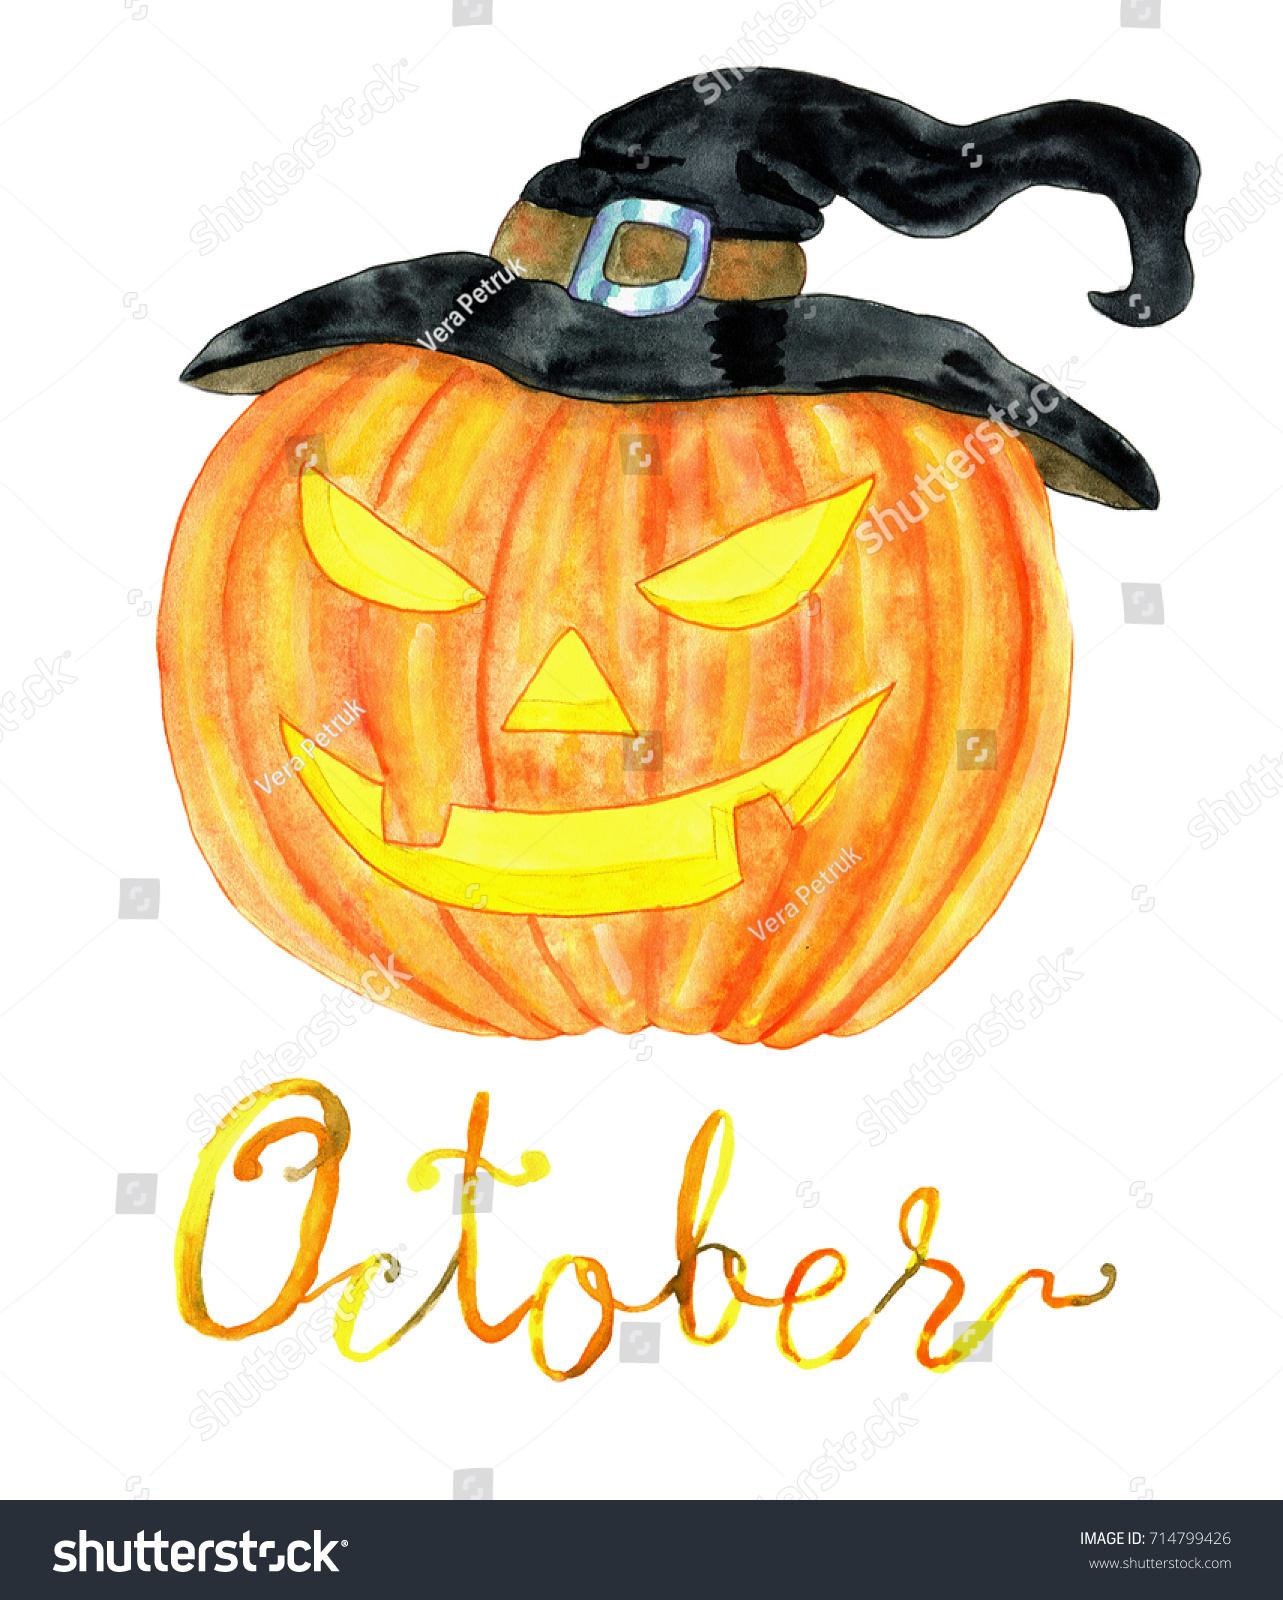 Calendar Head Design : October month pumpkin head halloween celebration stock